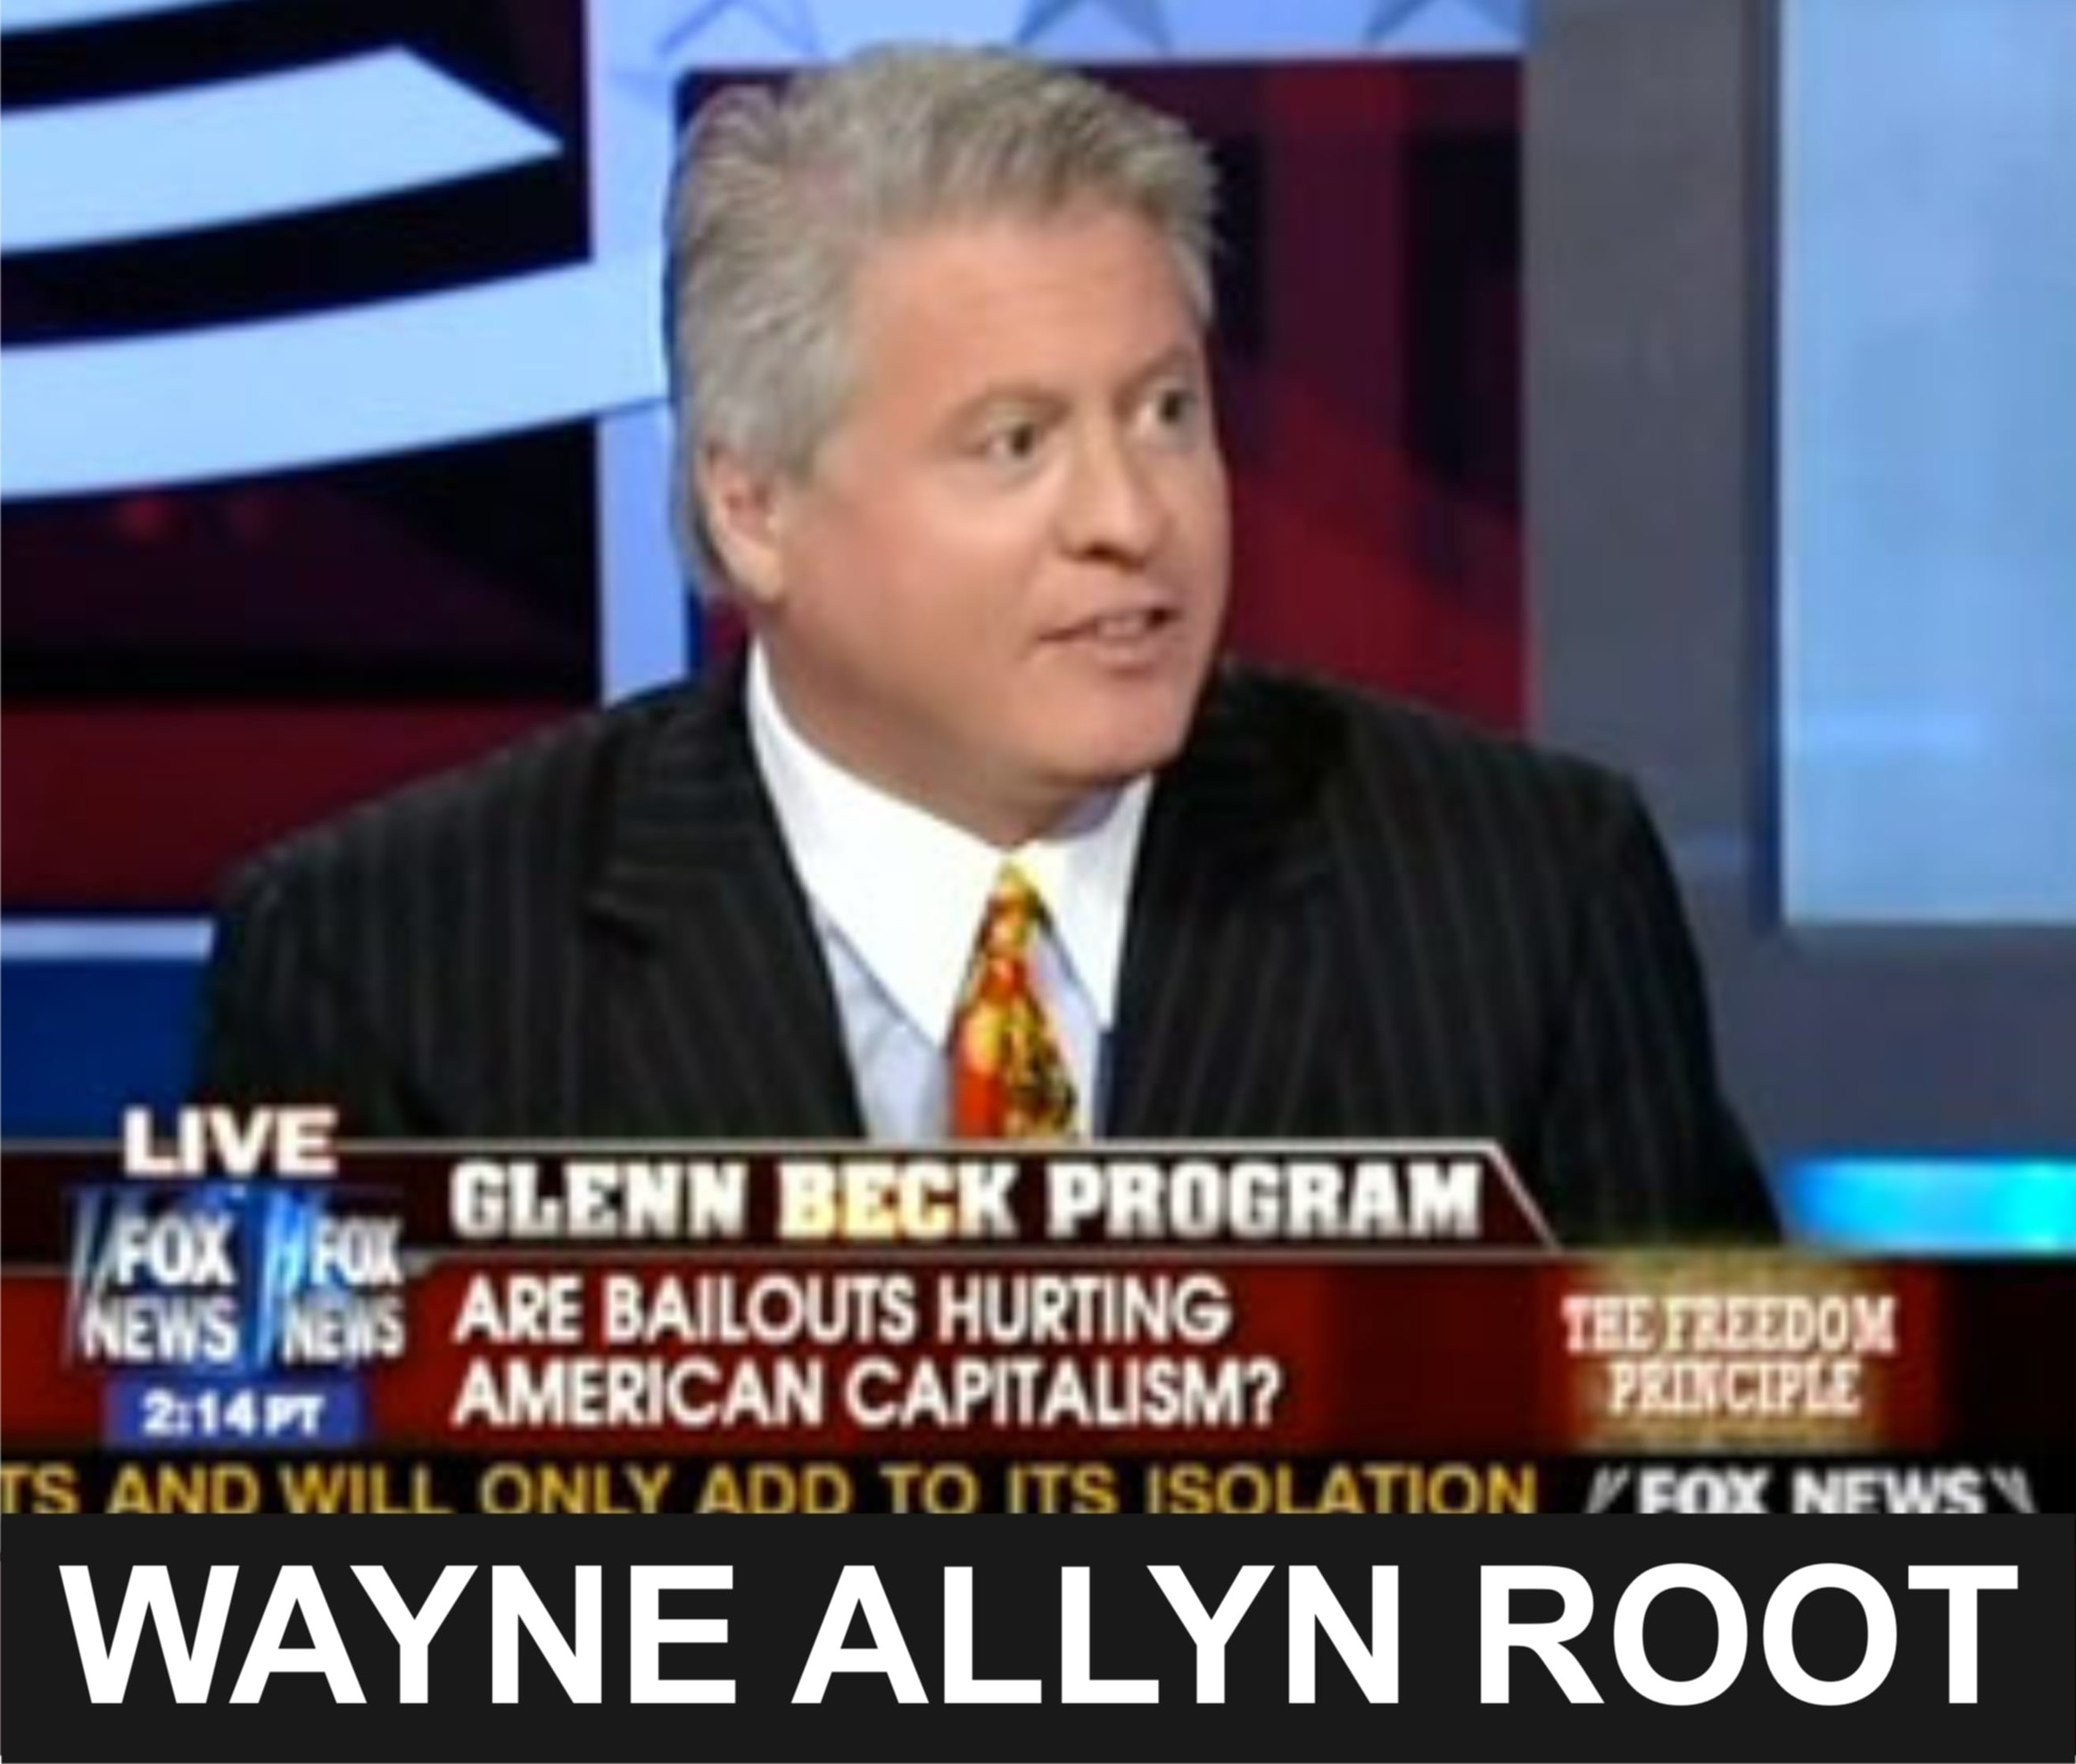 Wayne Allyn Root - US Political figure and vice-presidential nominee